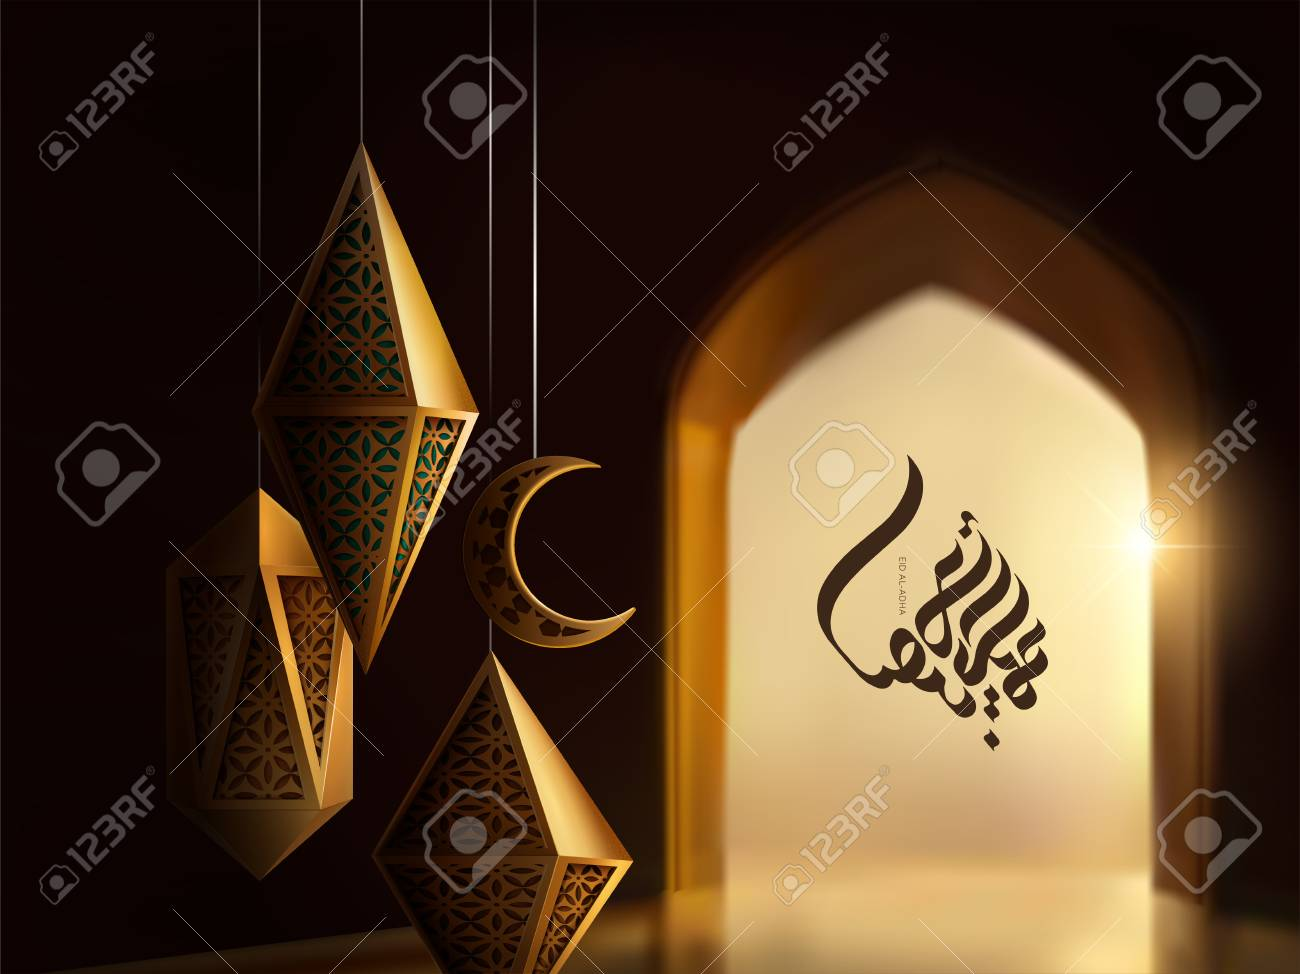 Eid Al-Adha calligraphy design with carved lanterns on bokeh arch interior background, 3d illustration - 112241737